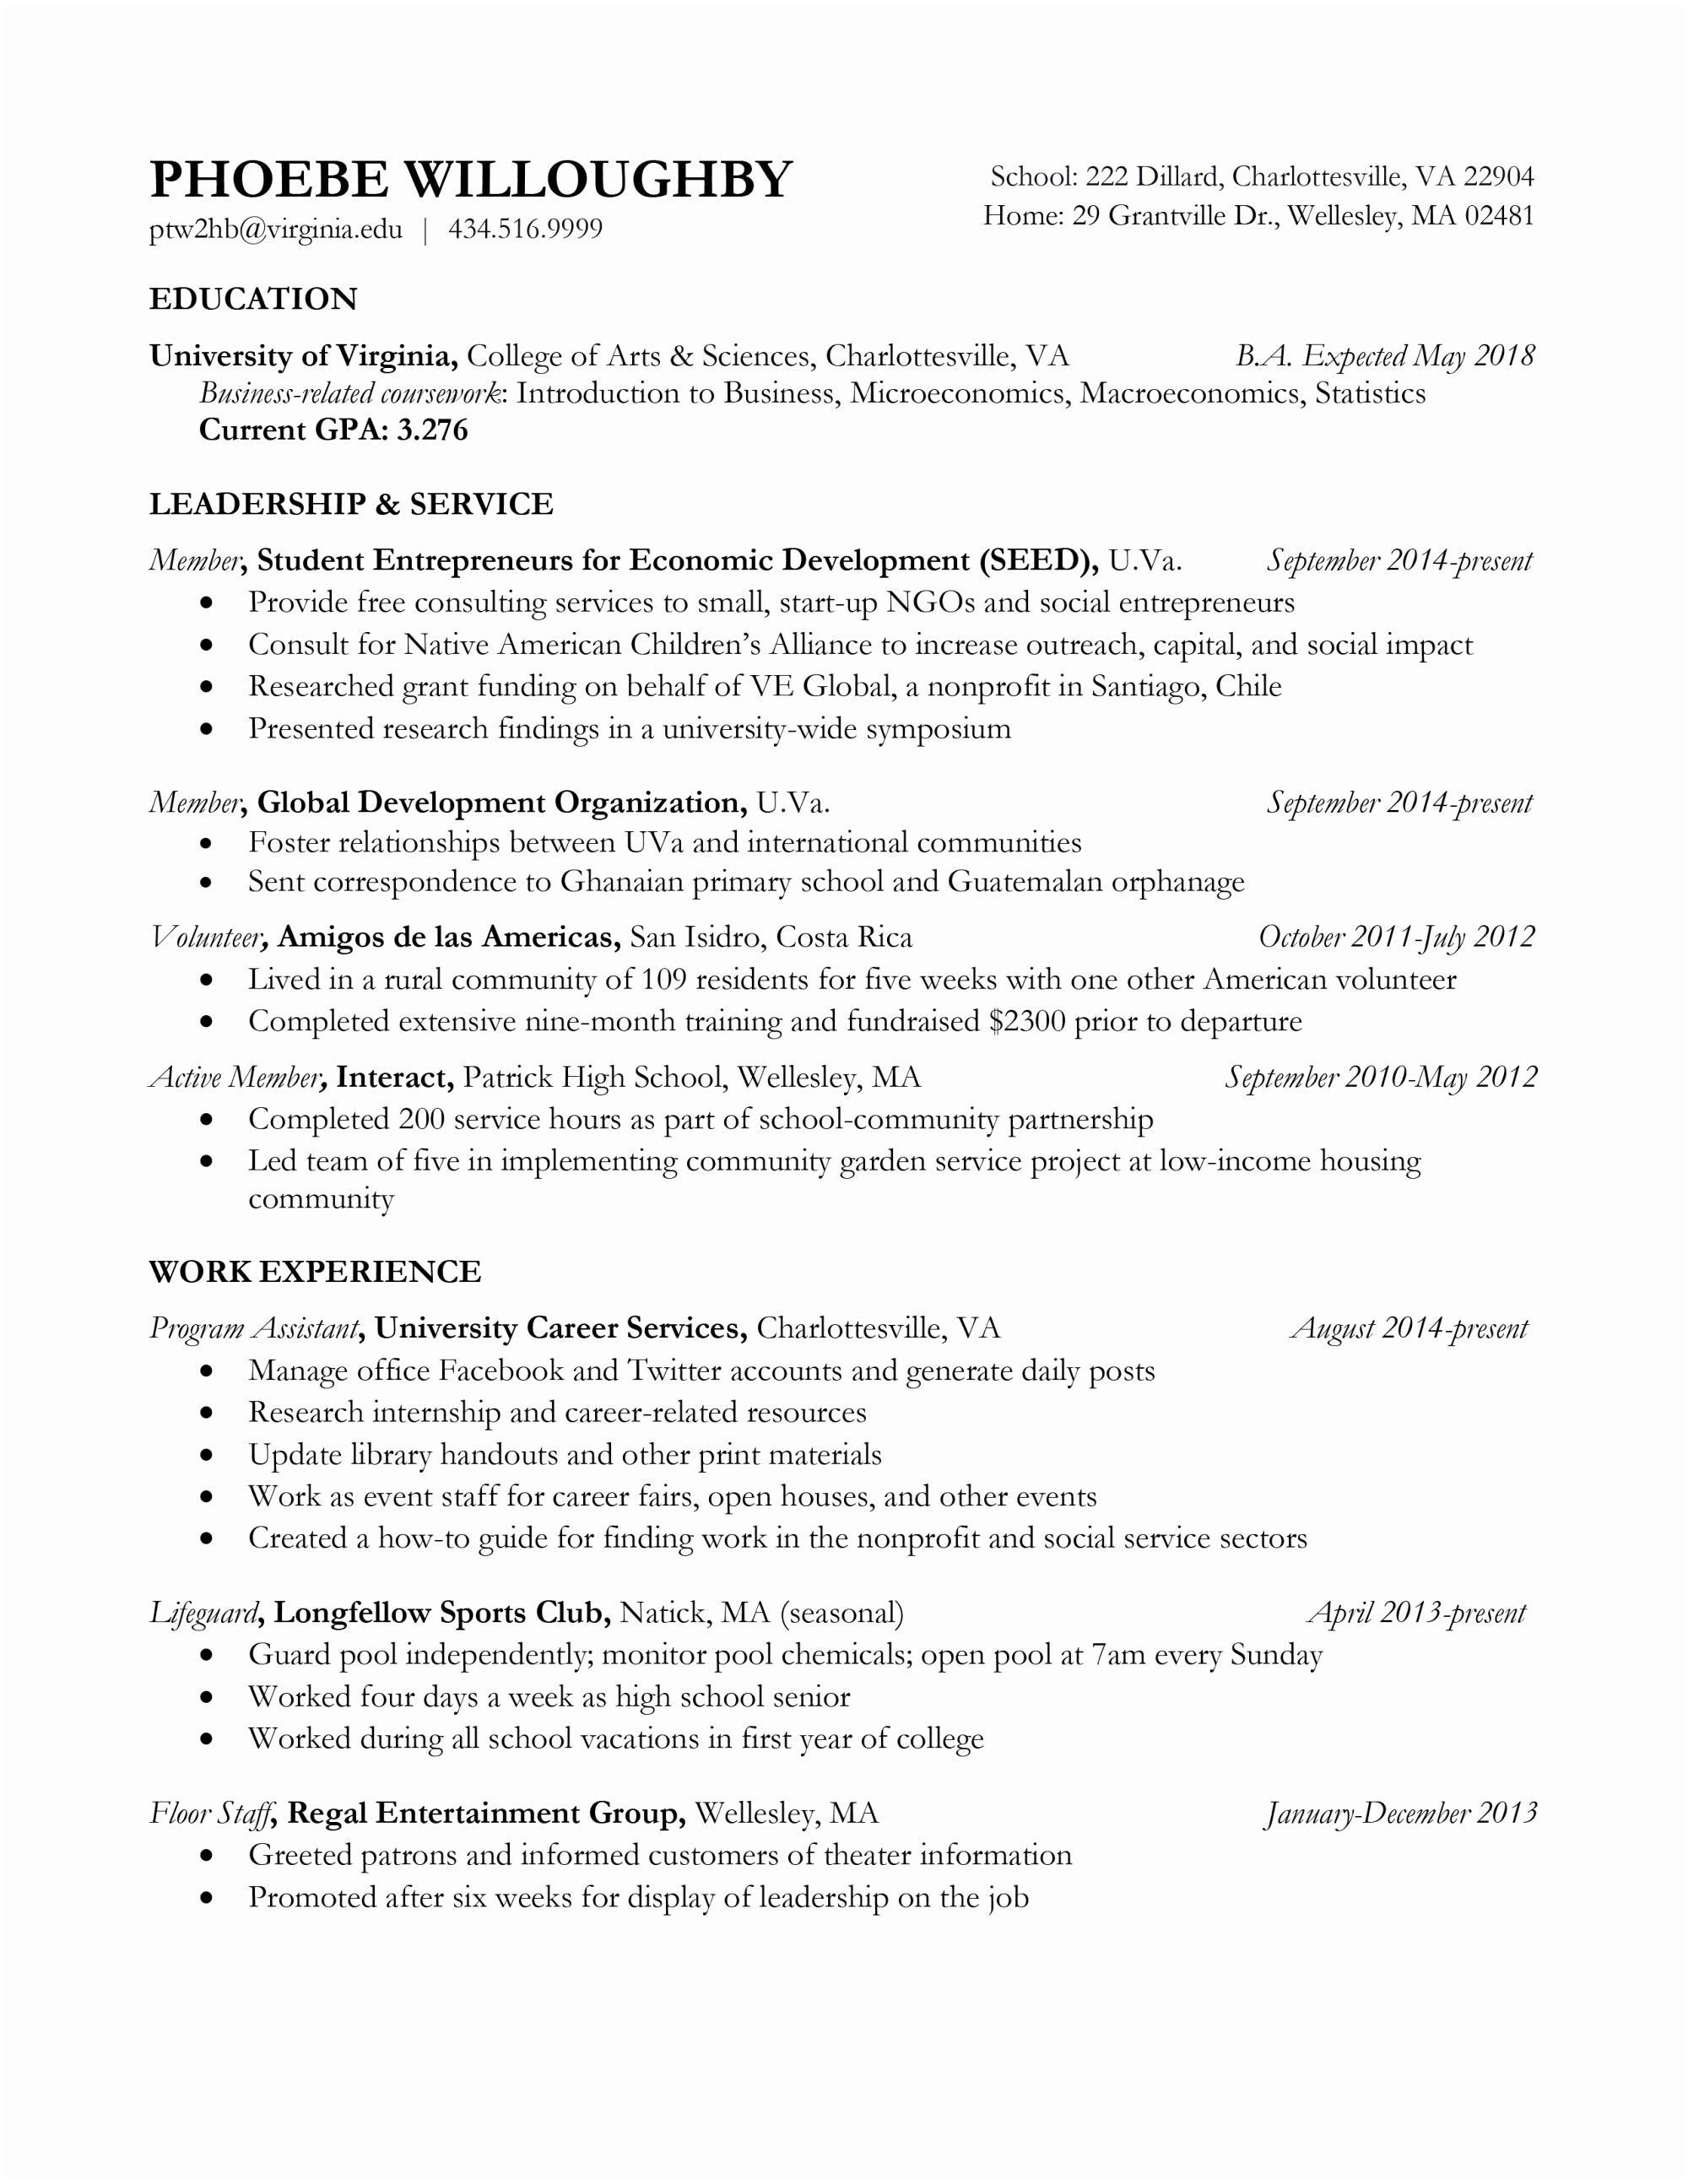 Business This Week Economist Chef Resume Samples Unique Economist Resume New Cook Resume Examples